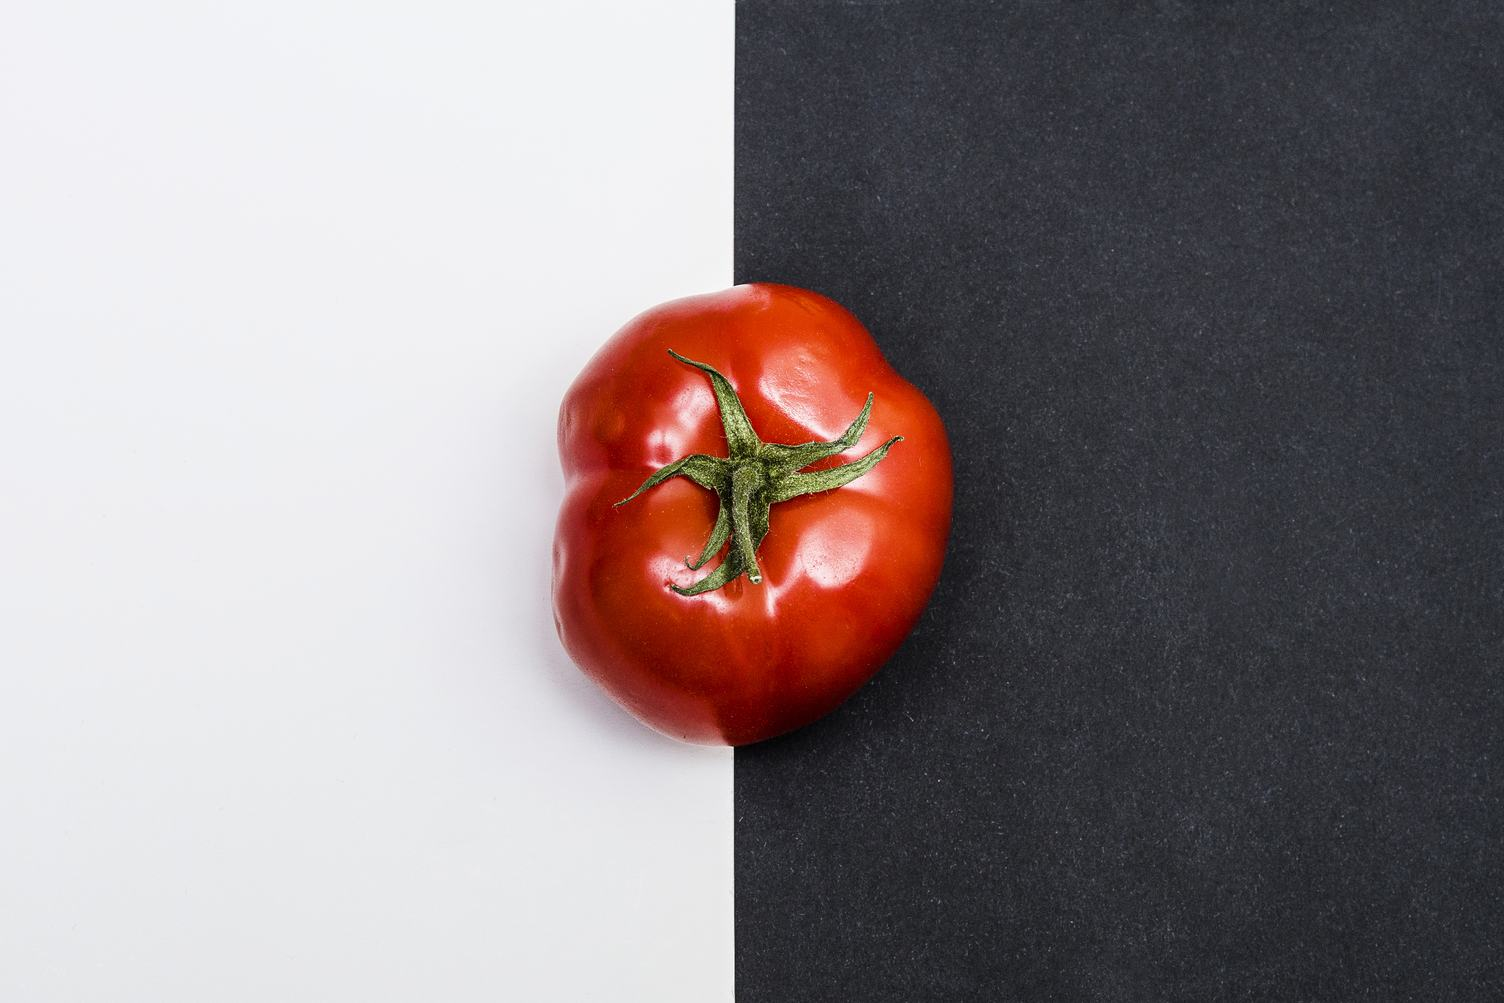 Ripe Tomato on Black and White Background Top View